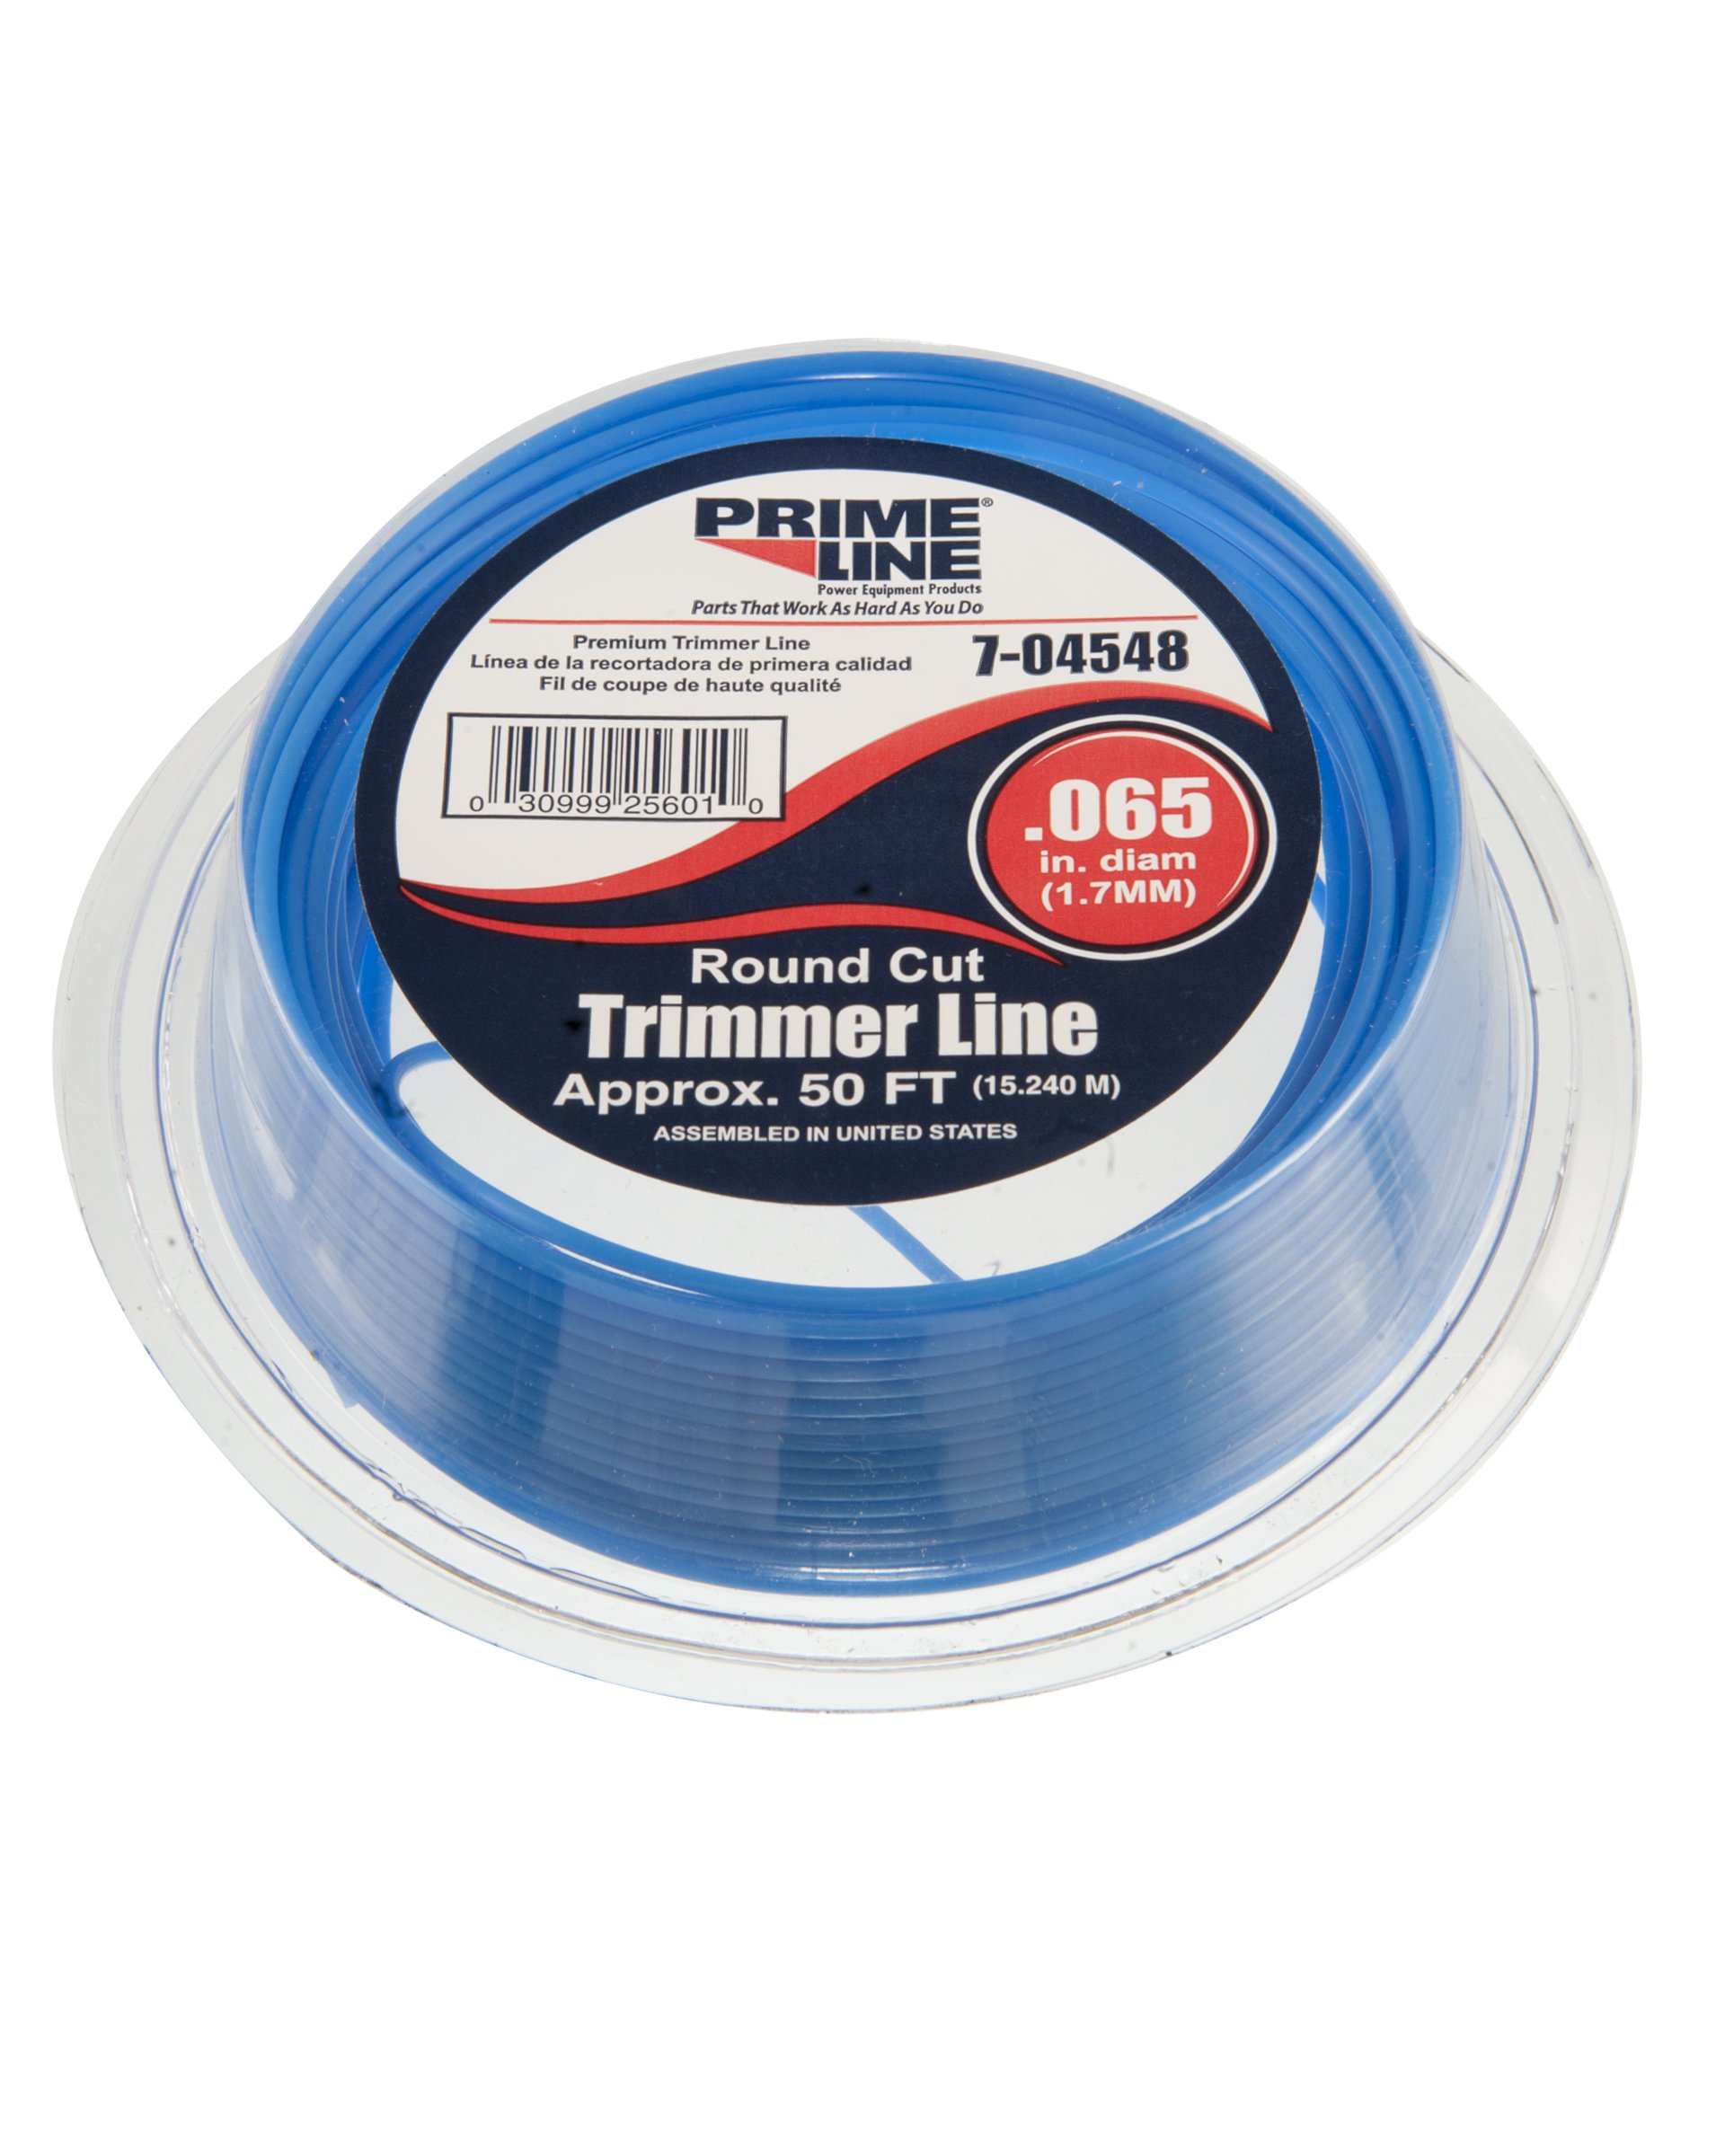 Prime Line 7-04548 Round Cut Trimmer Line, 50-Feet by 0.065-Inch Diameter